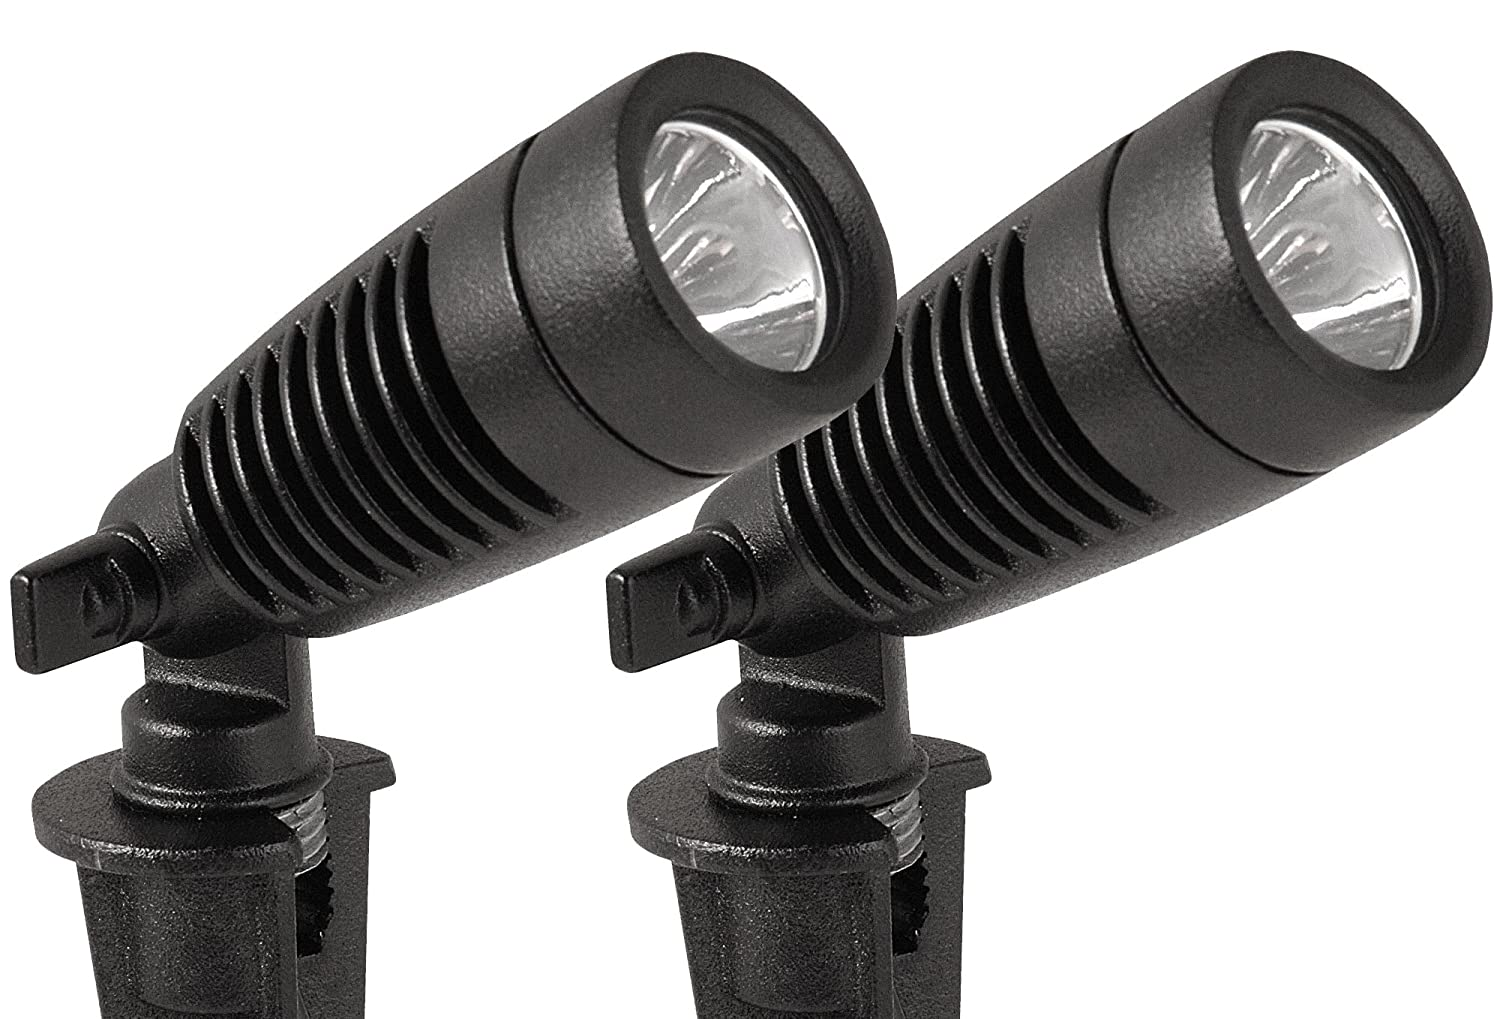 moonrays 95557 led outdoor landscape metal spot light fixture 2 pack black 1 ebay. Black Bedroom Furniture Sets. Home Design Ideas